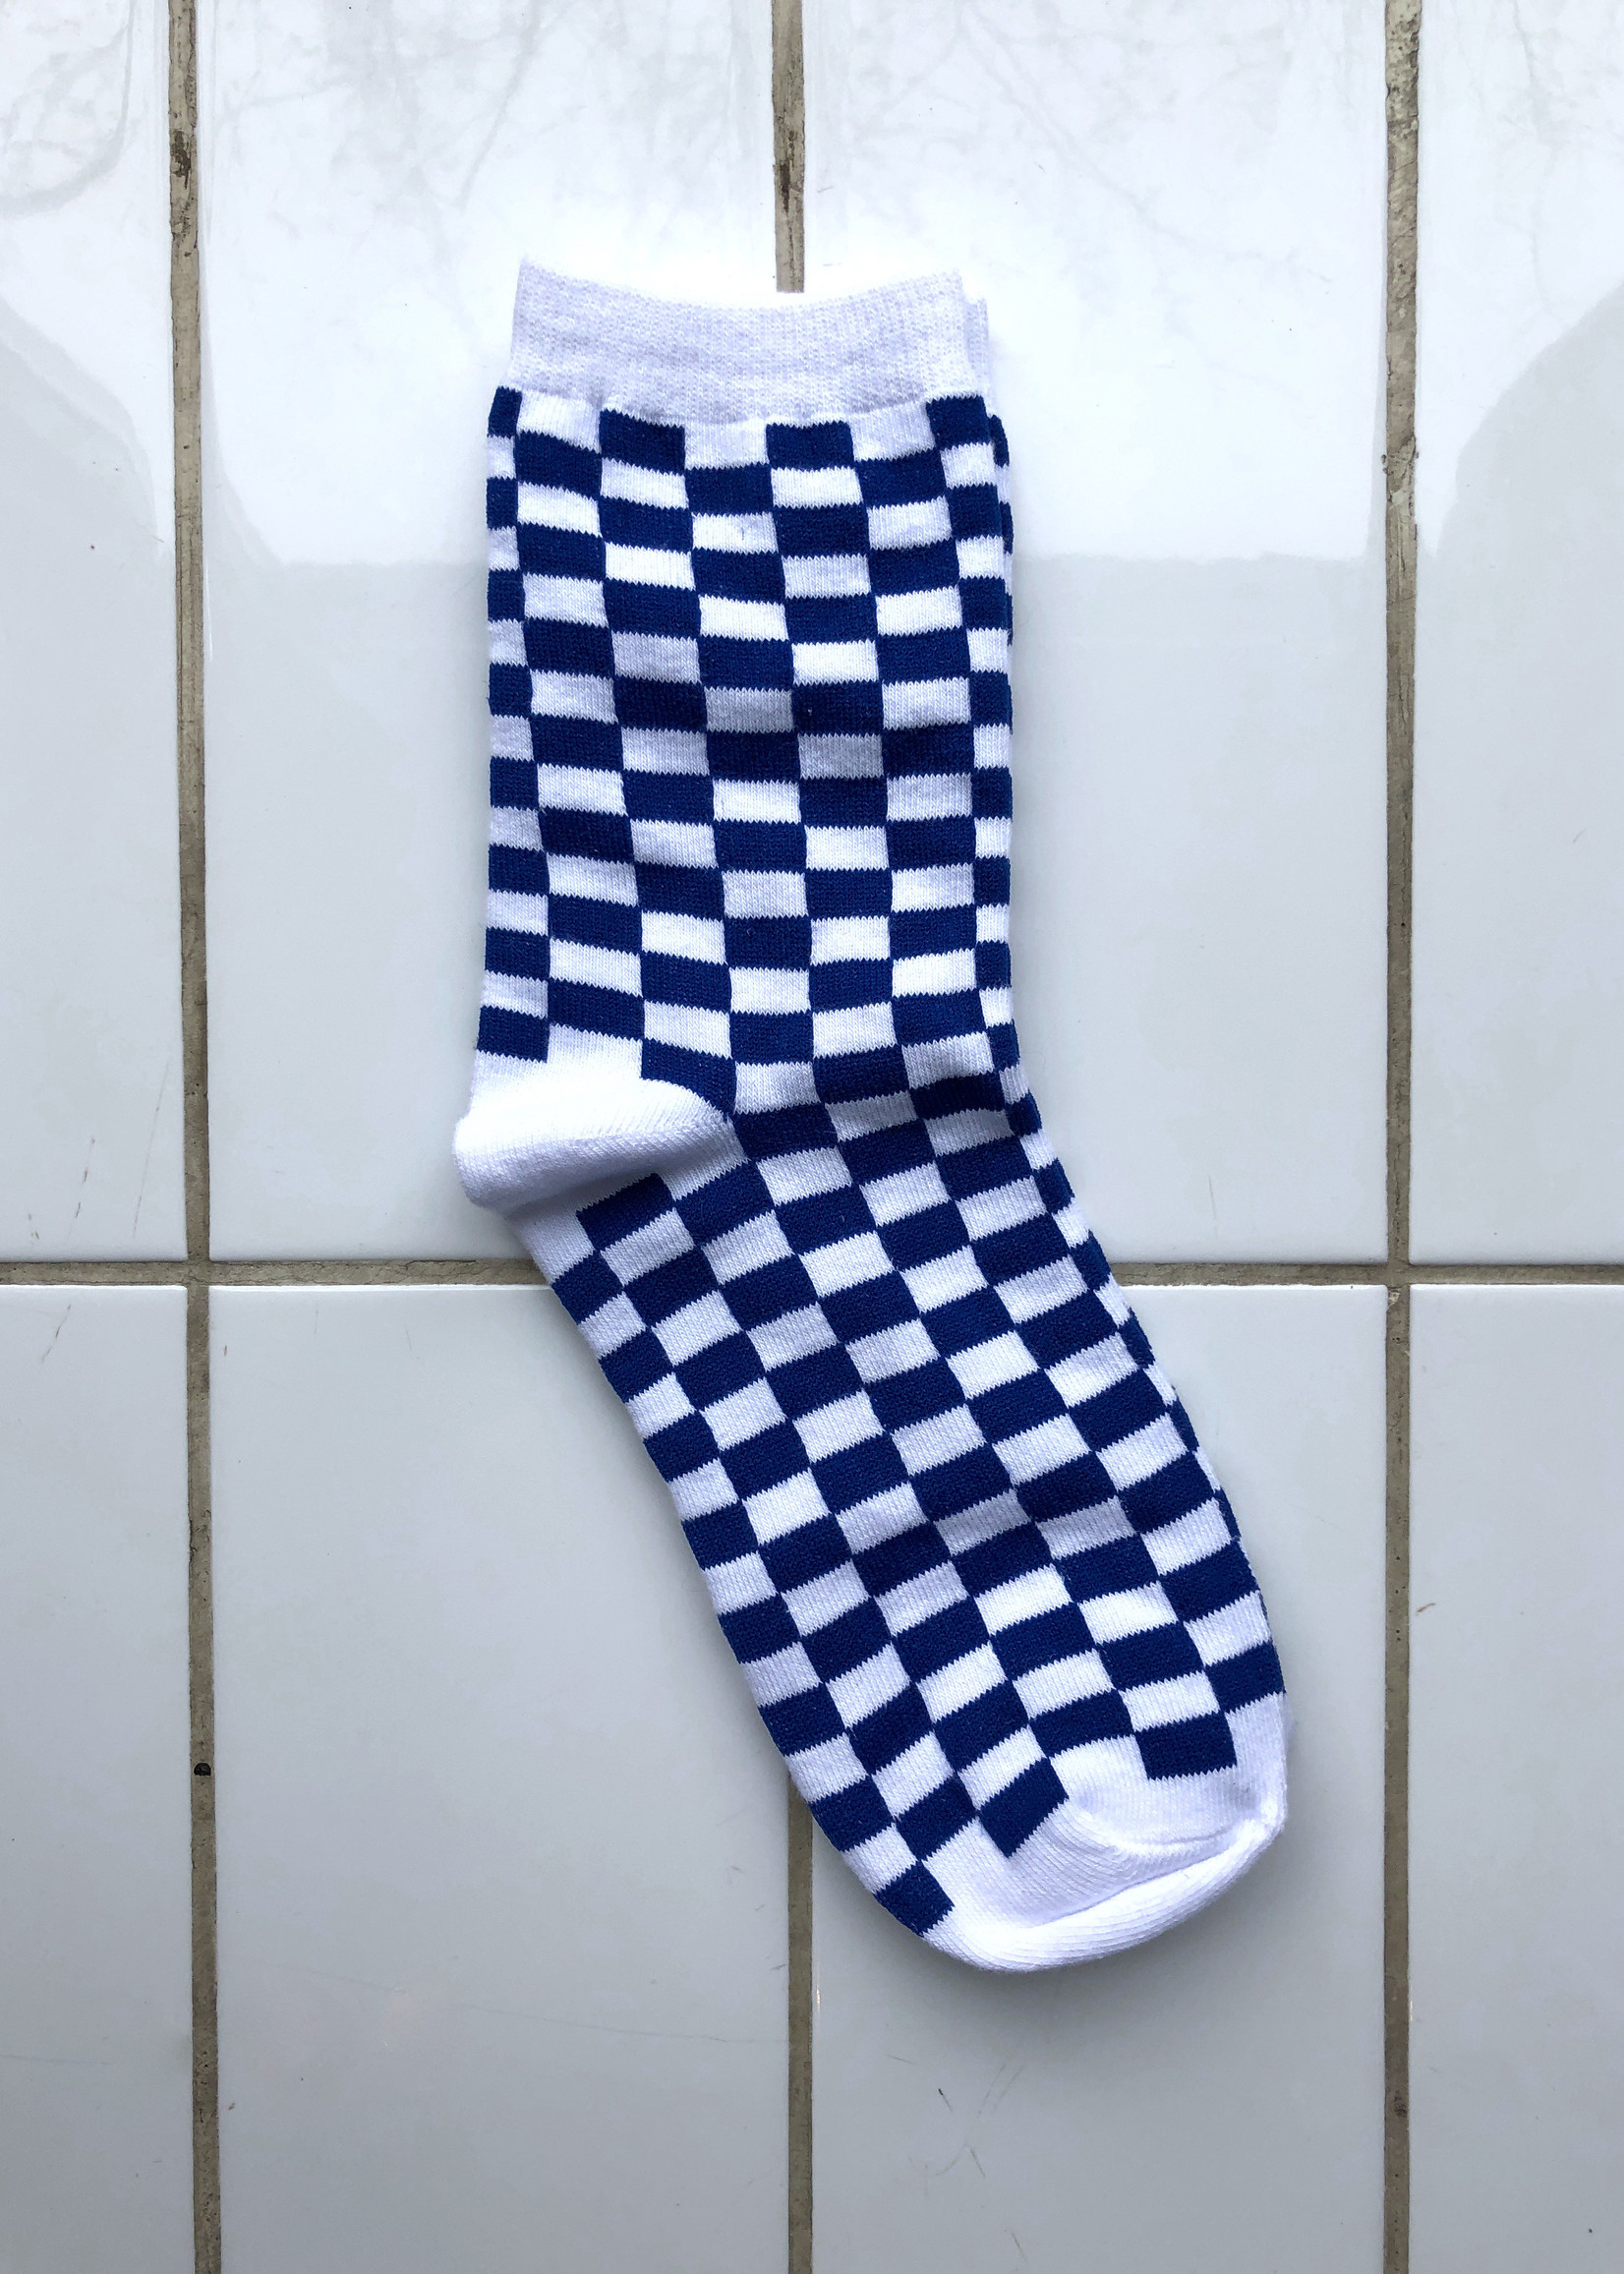 Empire Exchange Checker board Socks